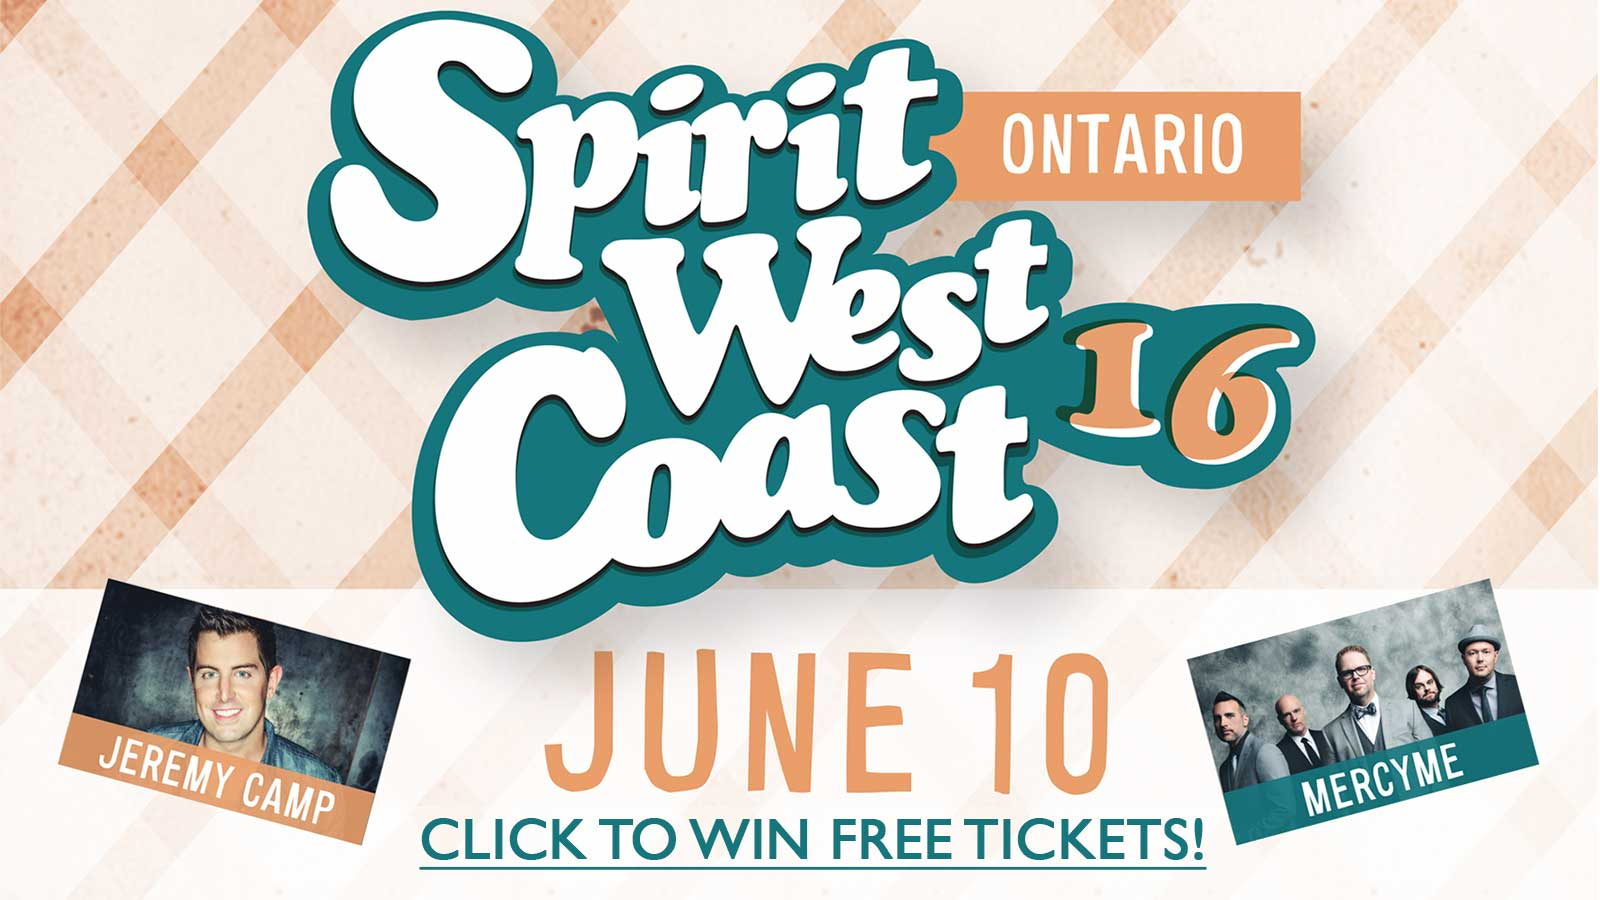 Win tix to Spirit West Coast